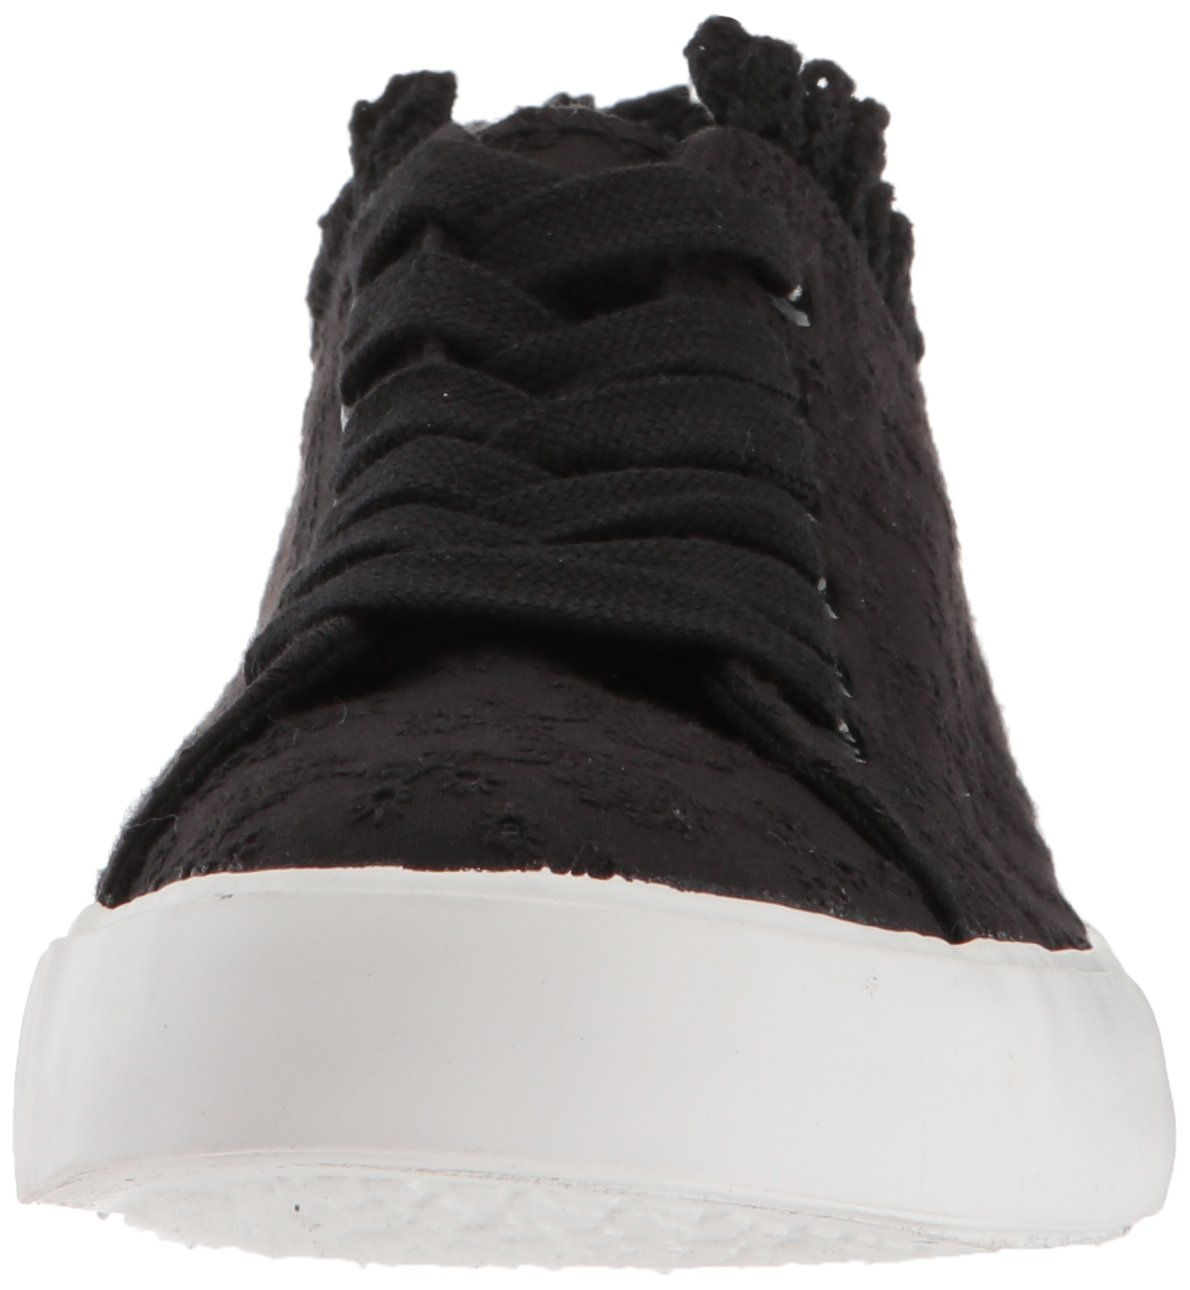 Rocket Dog Women's Jaybird Lucky Eyelet Cotton Sneaker B075NZ5D4C 8.5 B(M) US|Black